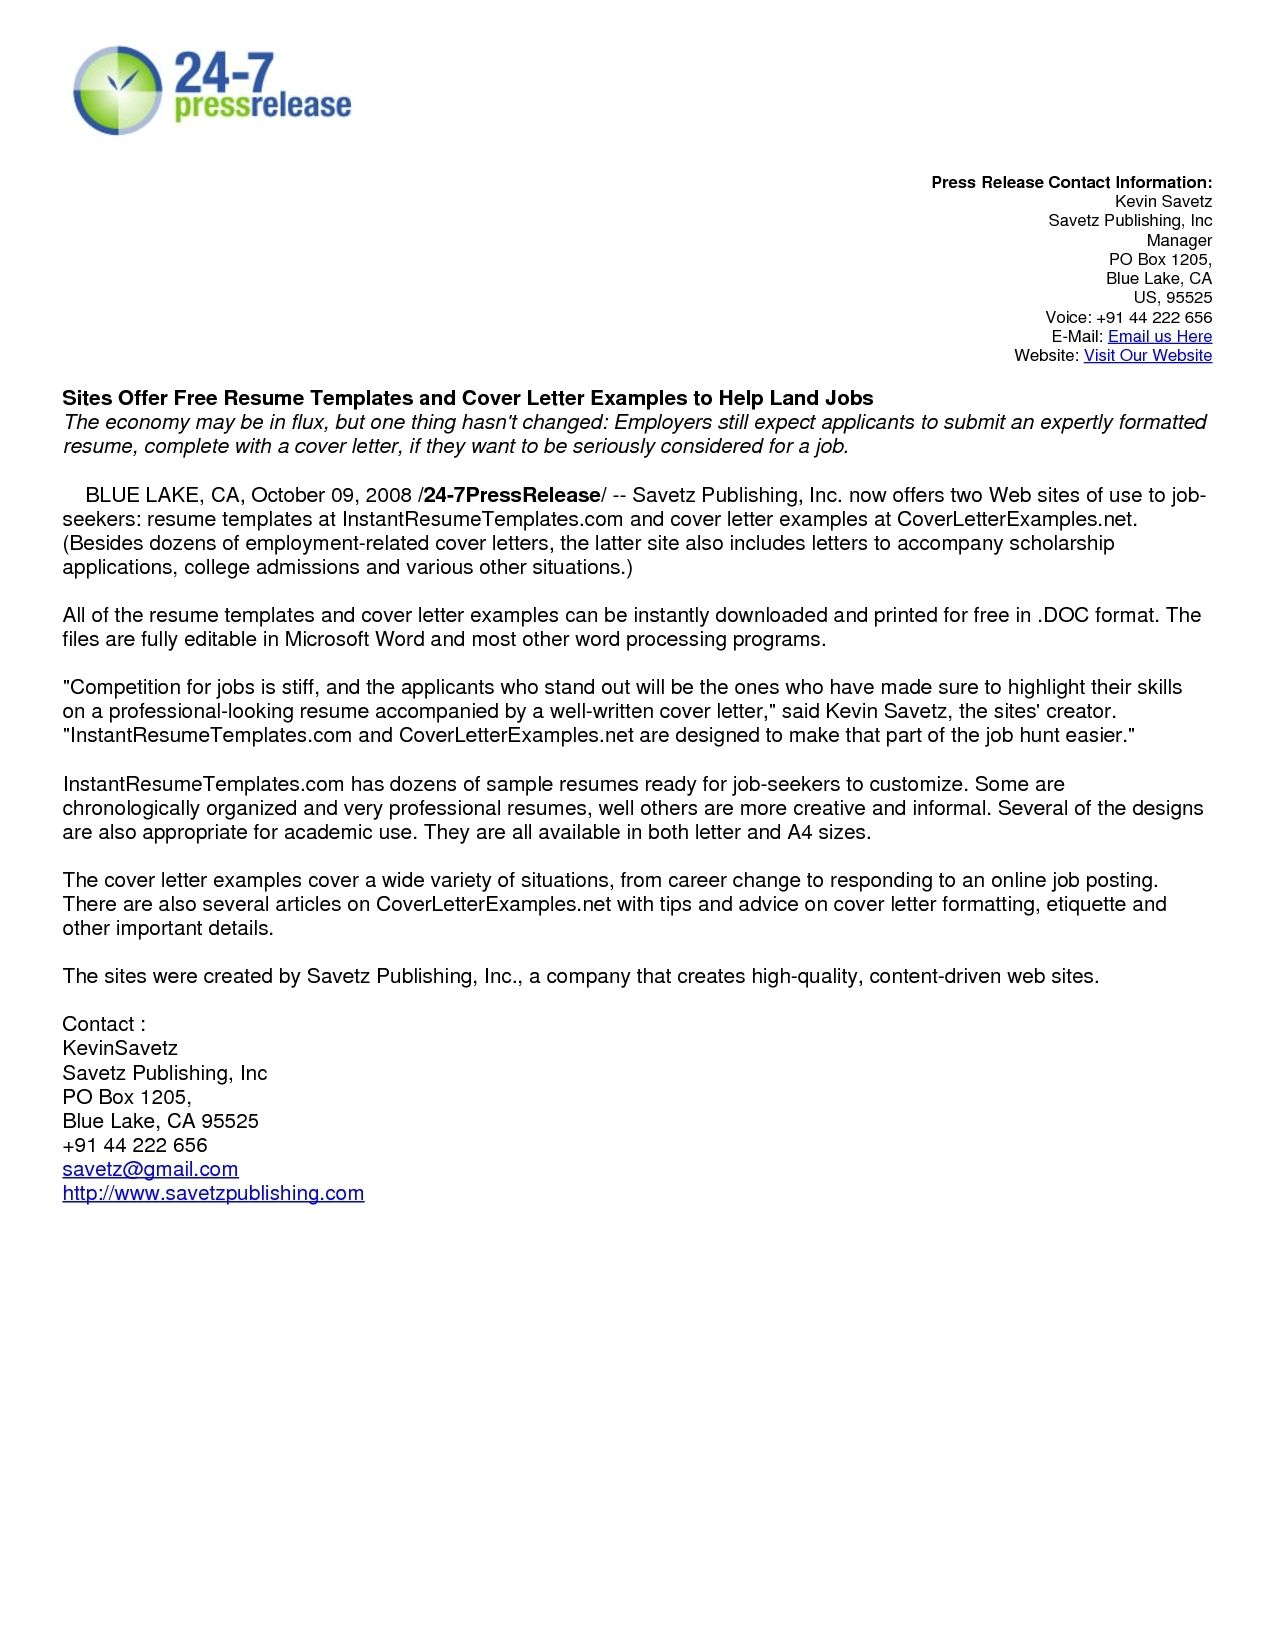 Business Cover Letter Template Word - Email Cover Letter Cover Letter Pinterest